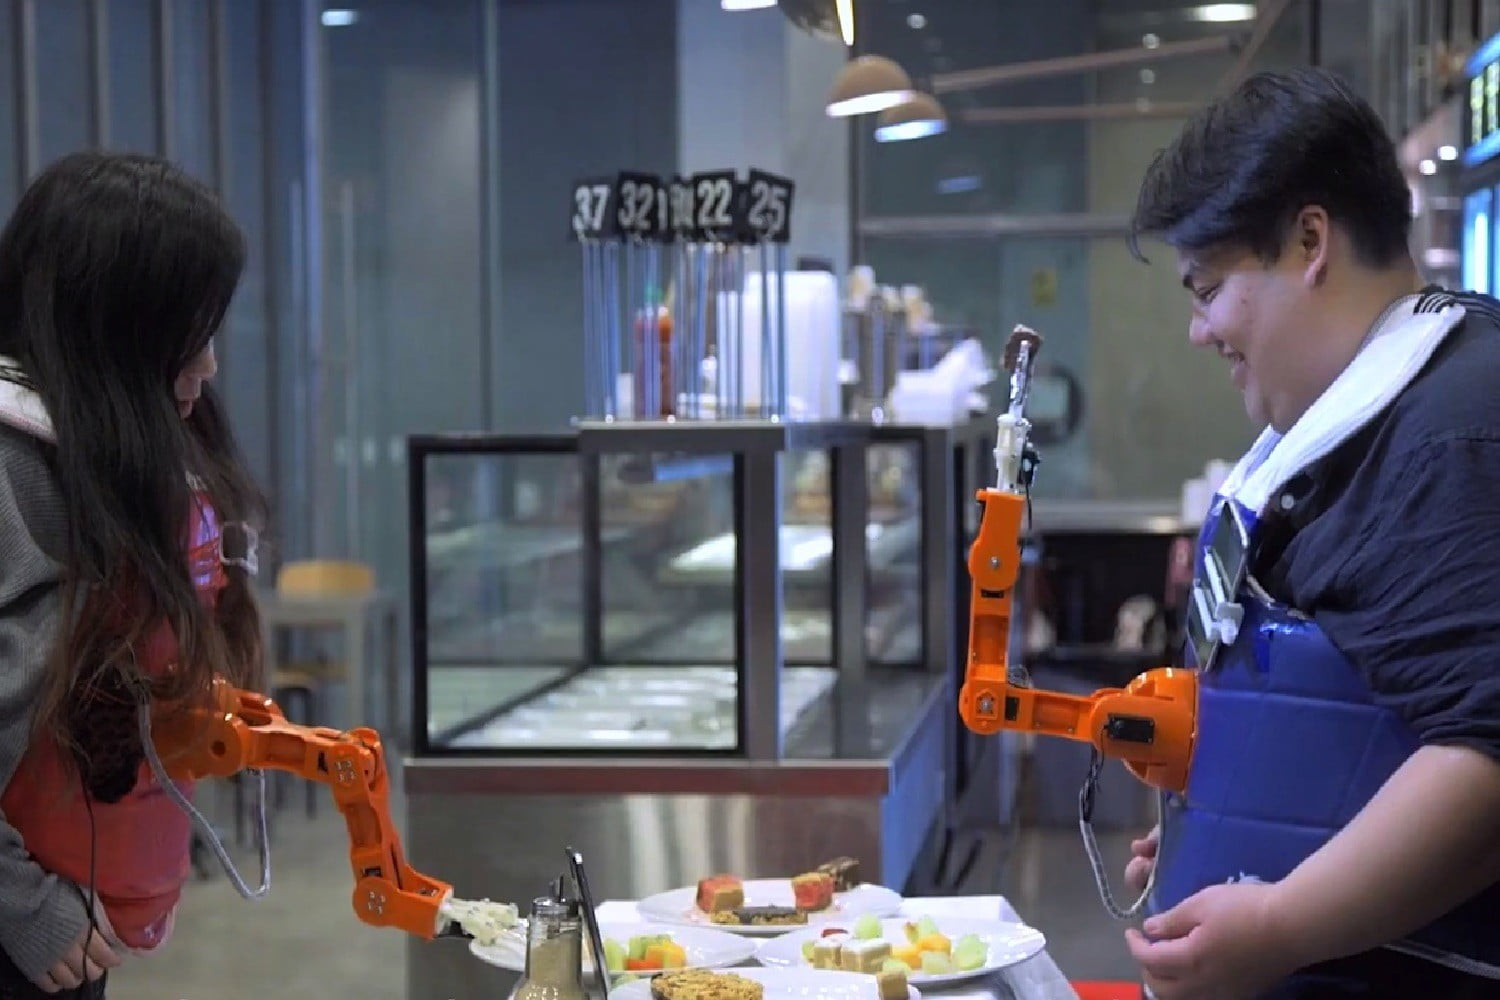 This weird wearable robot arm will feed you and your dinner companion